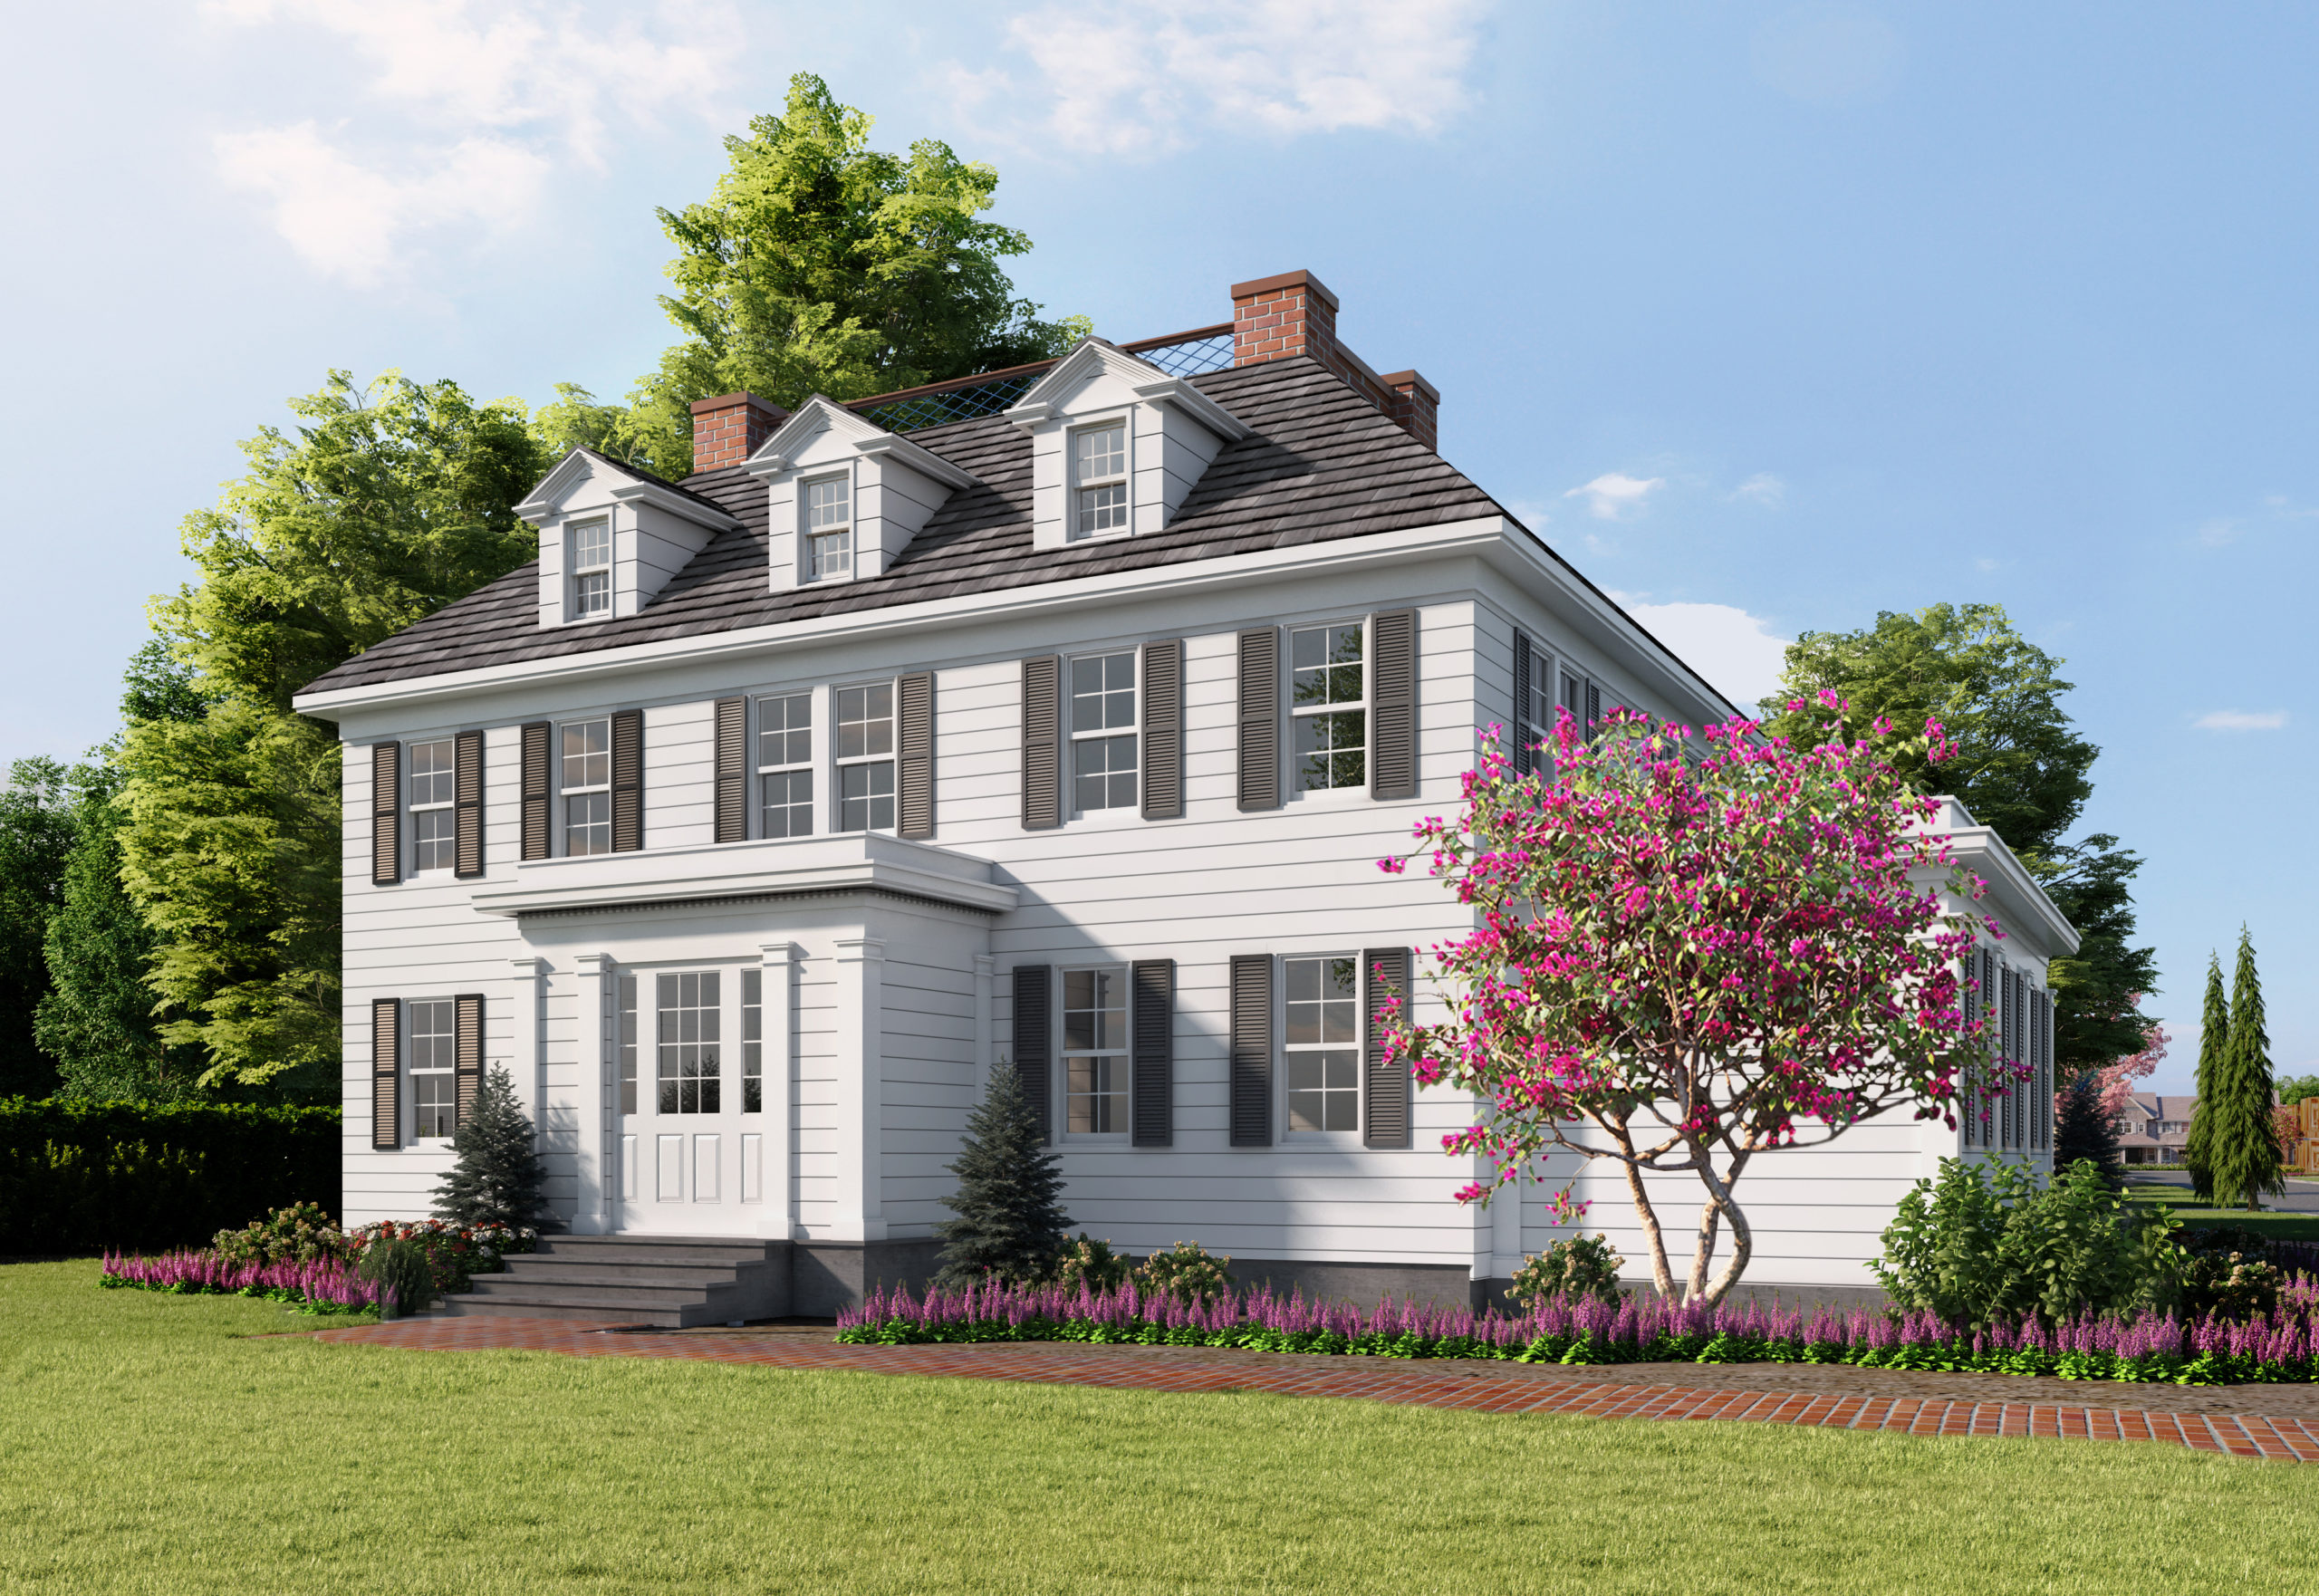 A rendering of the restored Terry Cottage. COURTESY THE BEECHWOOD ORGANIZATION